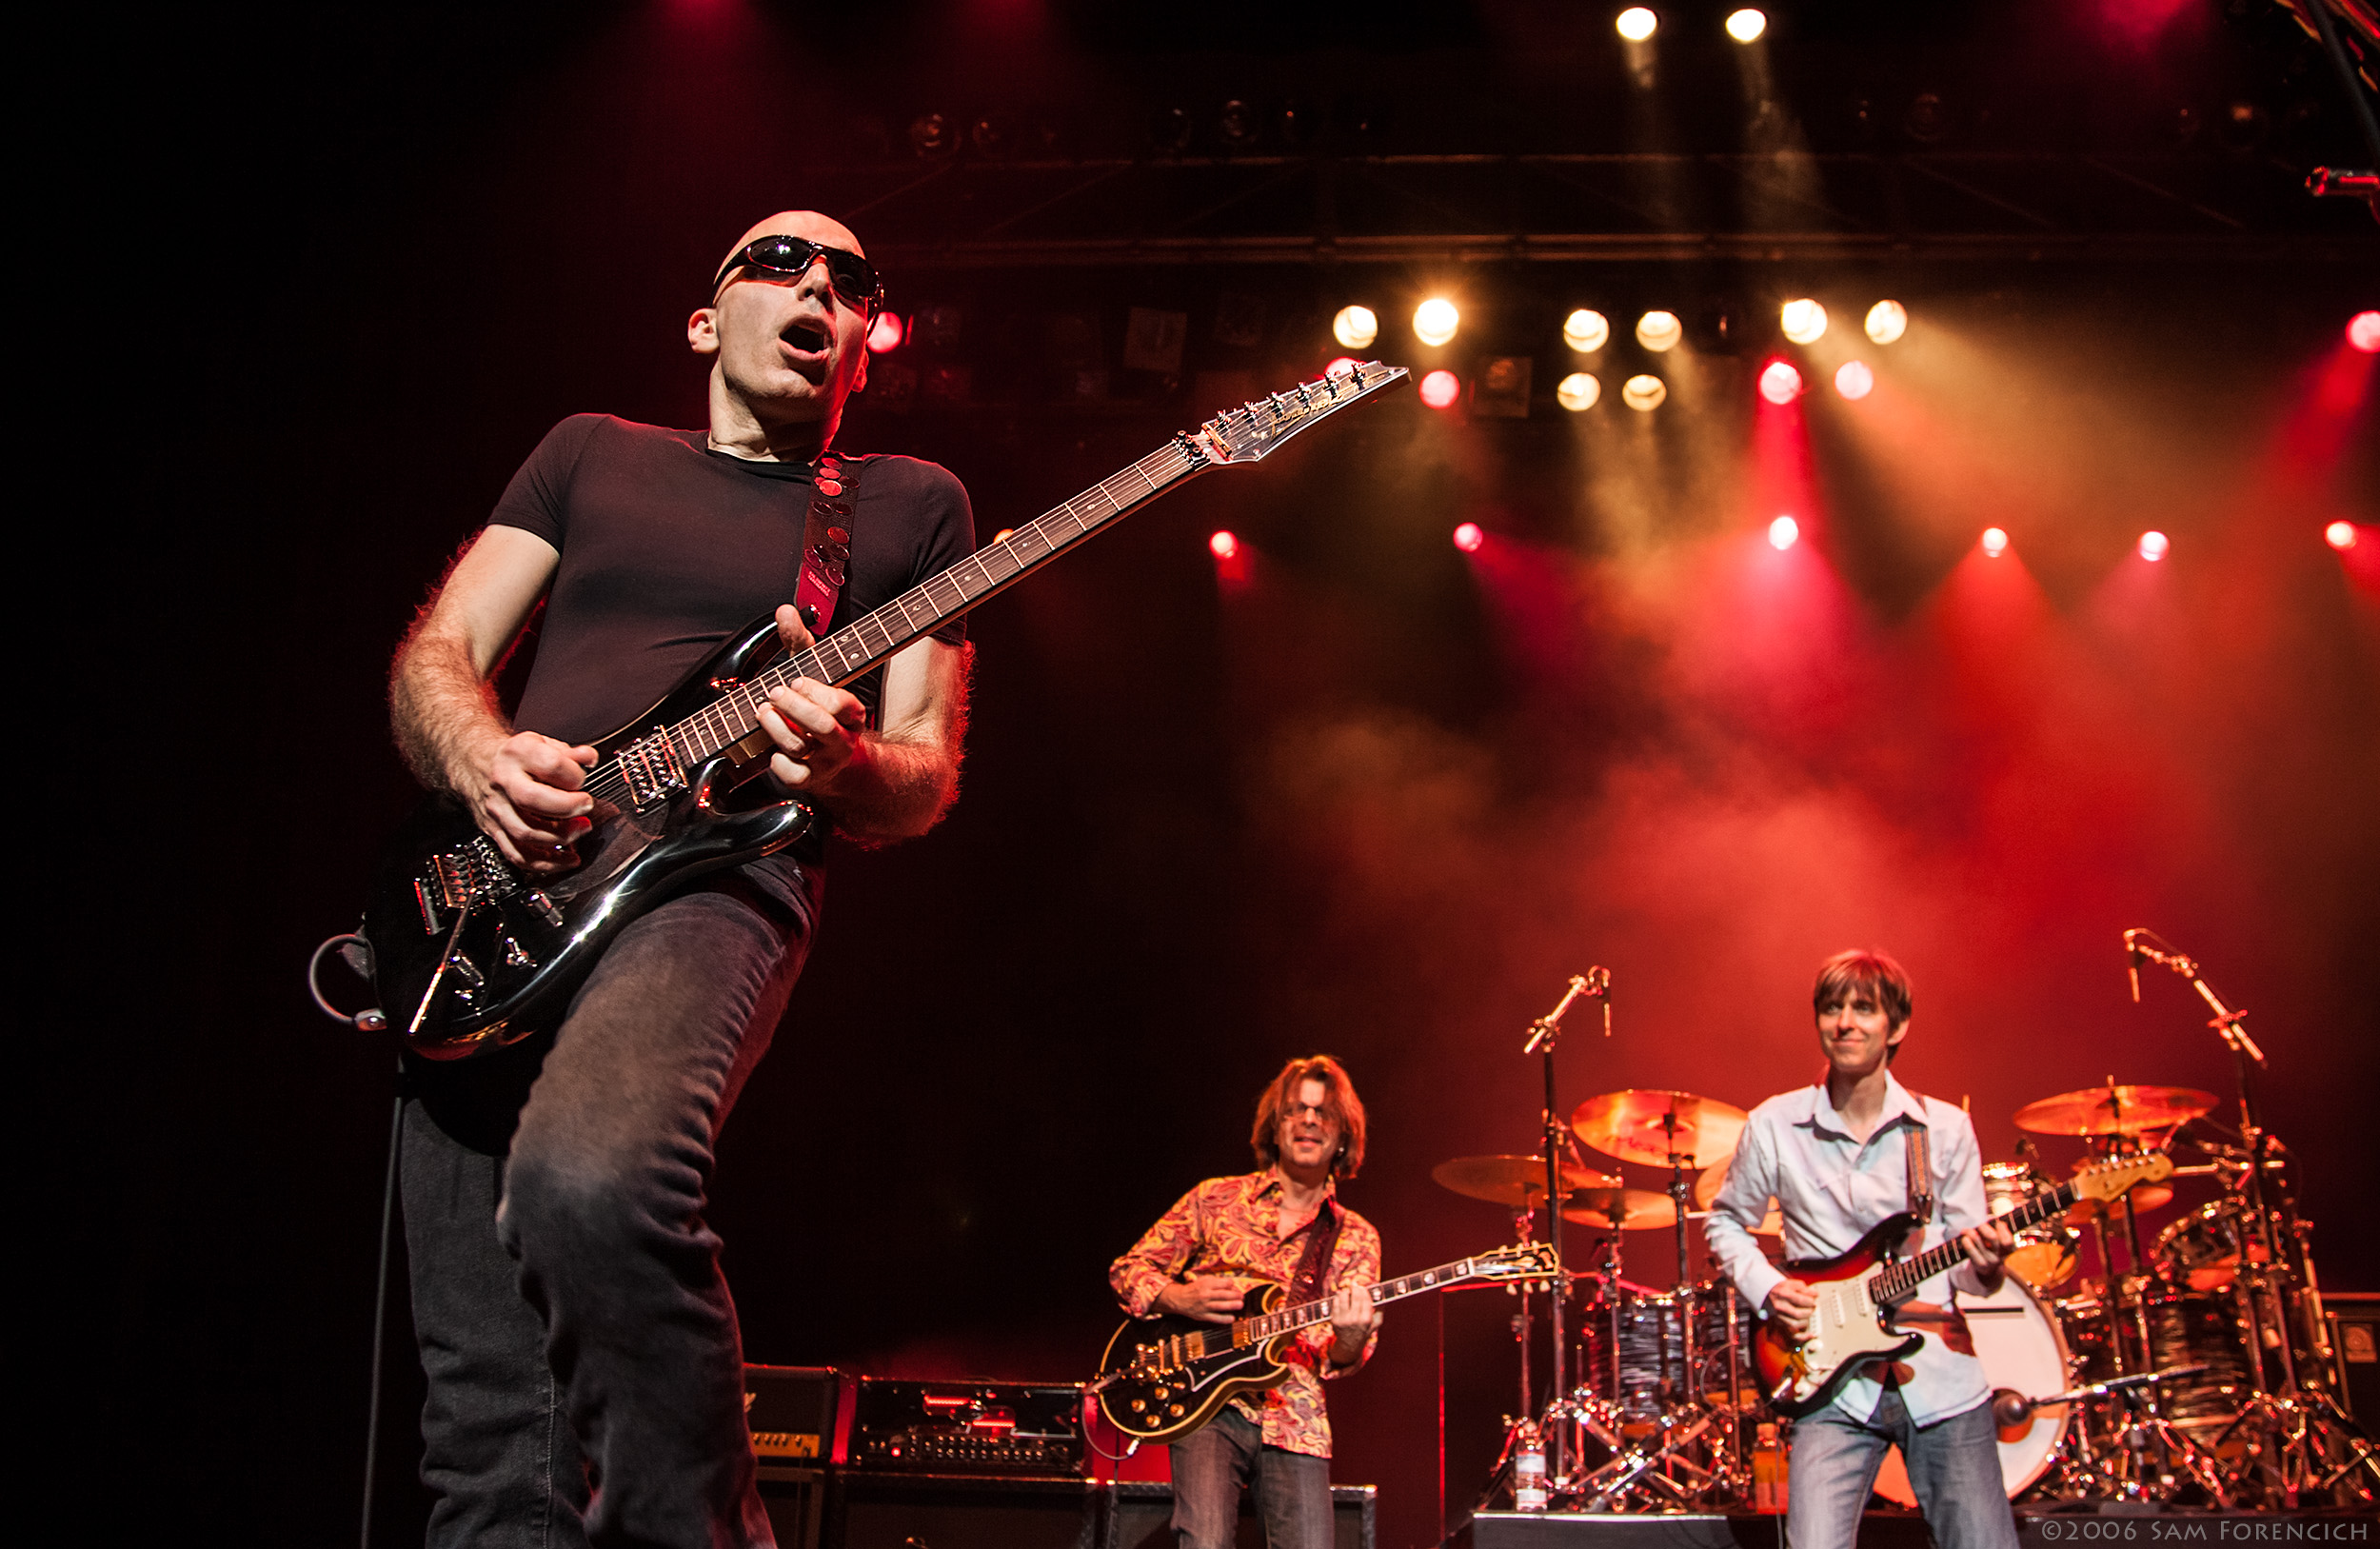 May 2006,San Francisco, California - Joe Satriani performs with Jonny A. and Eric Johnson at the Warfield Theater - 2006 Super Colossal Tour ©2006 Sam Forencich